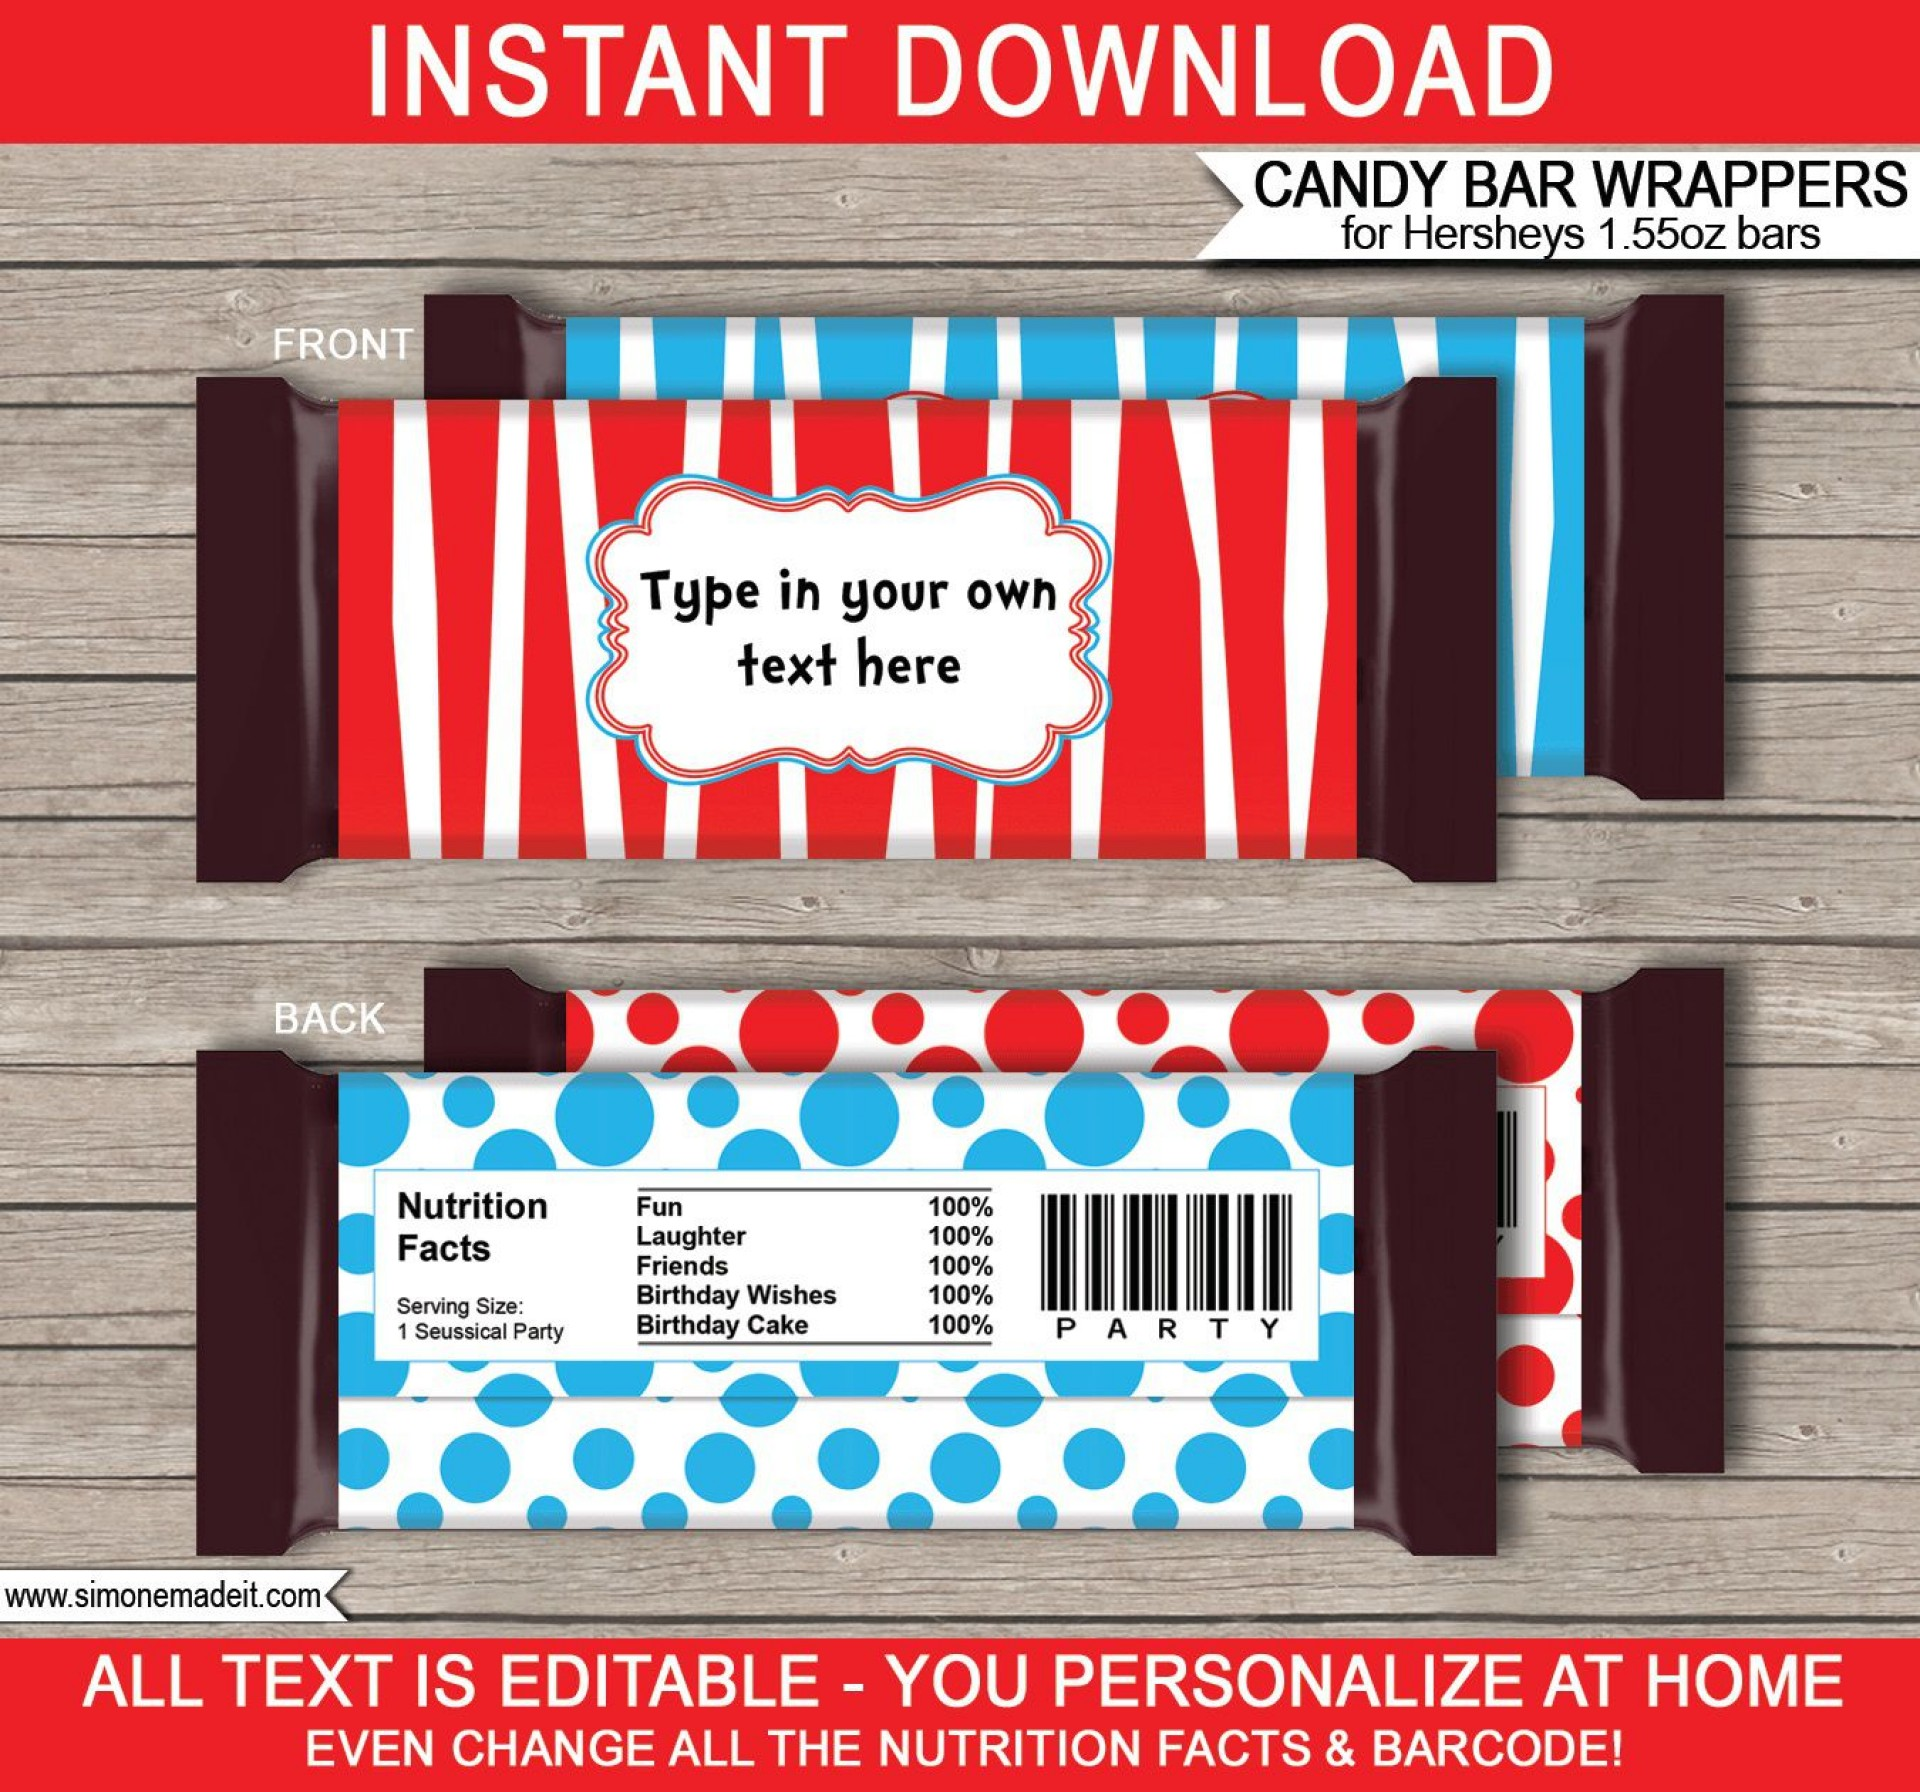 007 Archaicawful Hershey Candy Bar Wrapper Template High Definition  Free Word1920